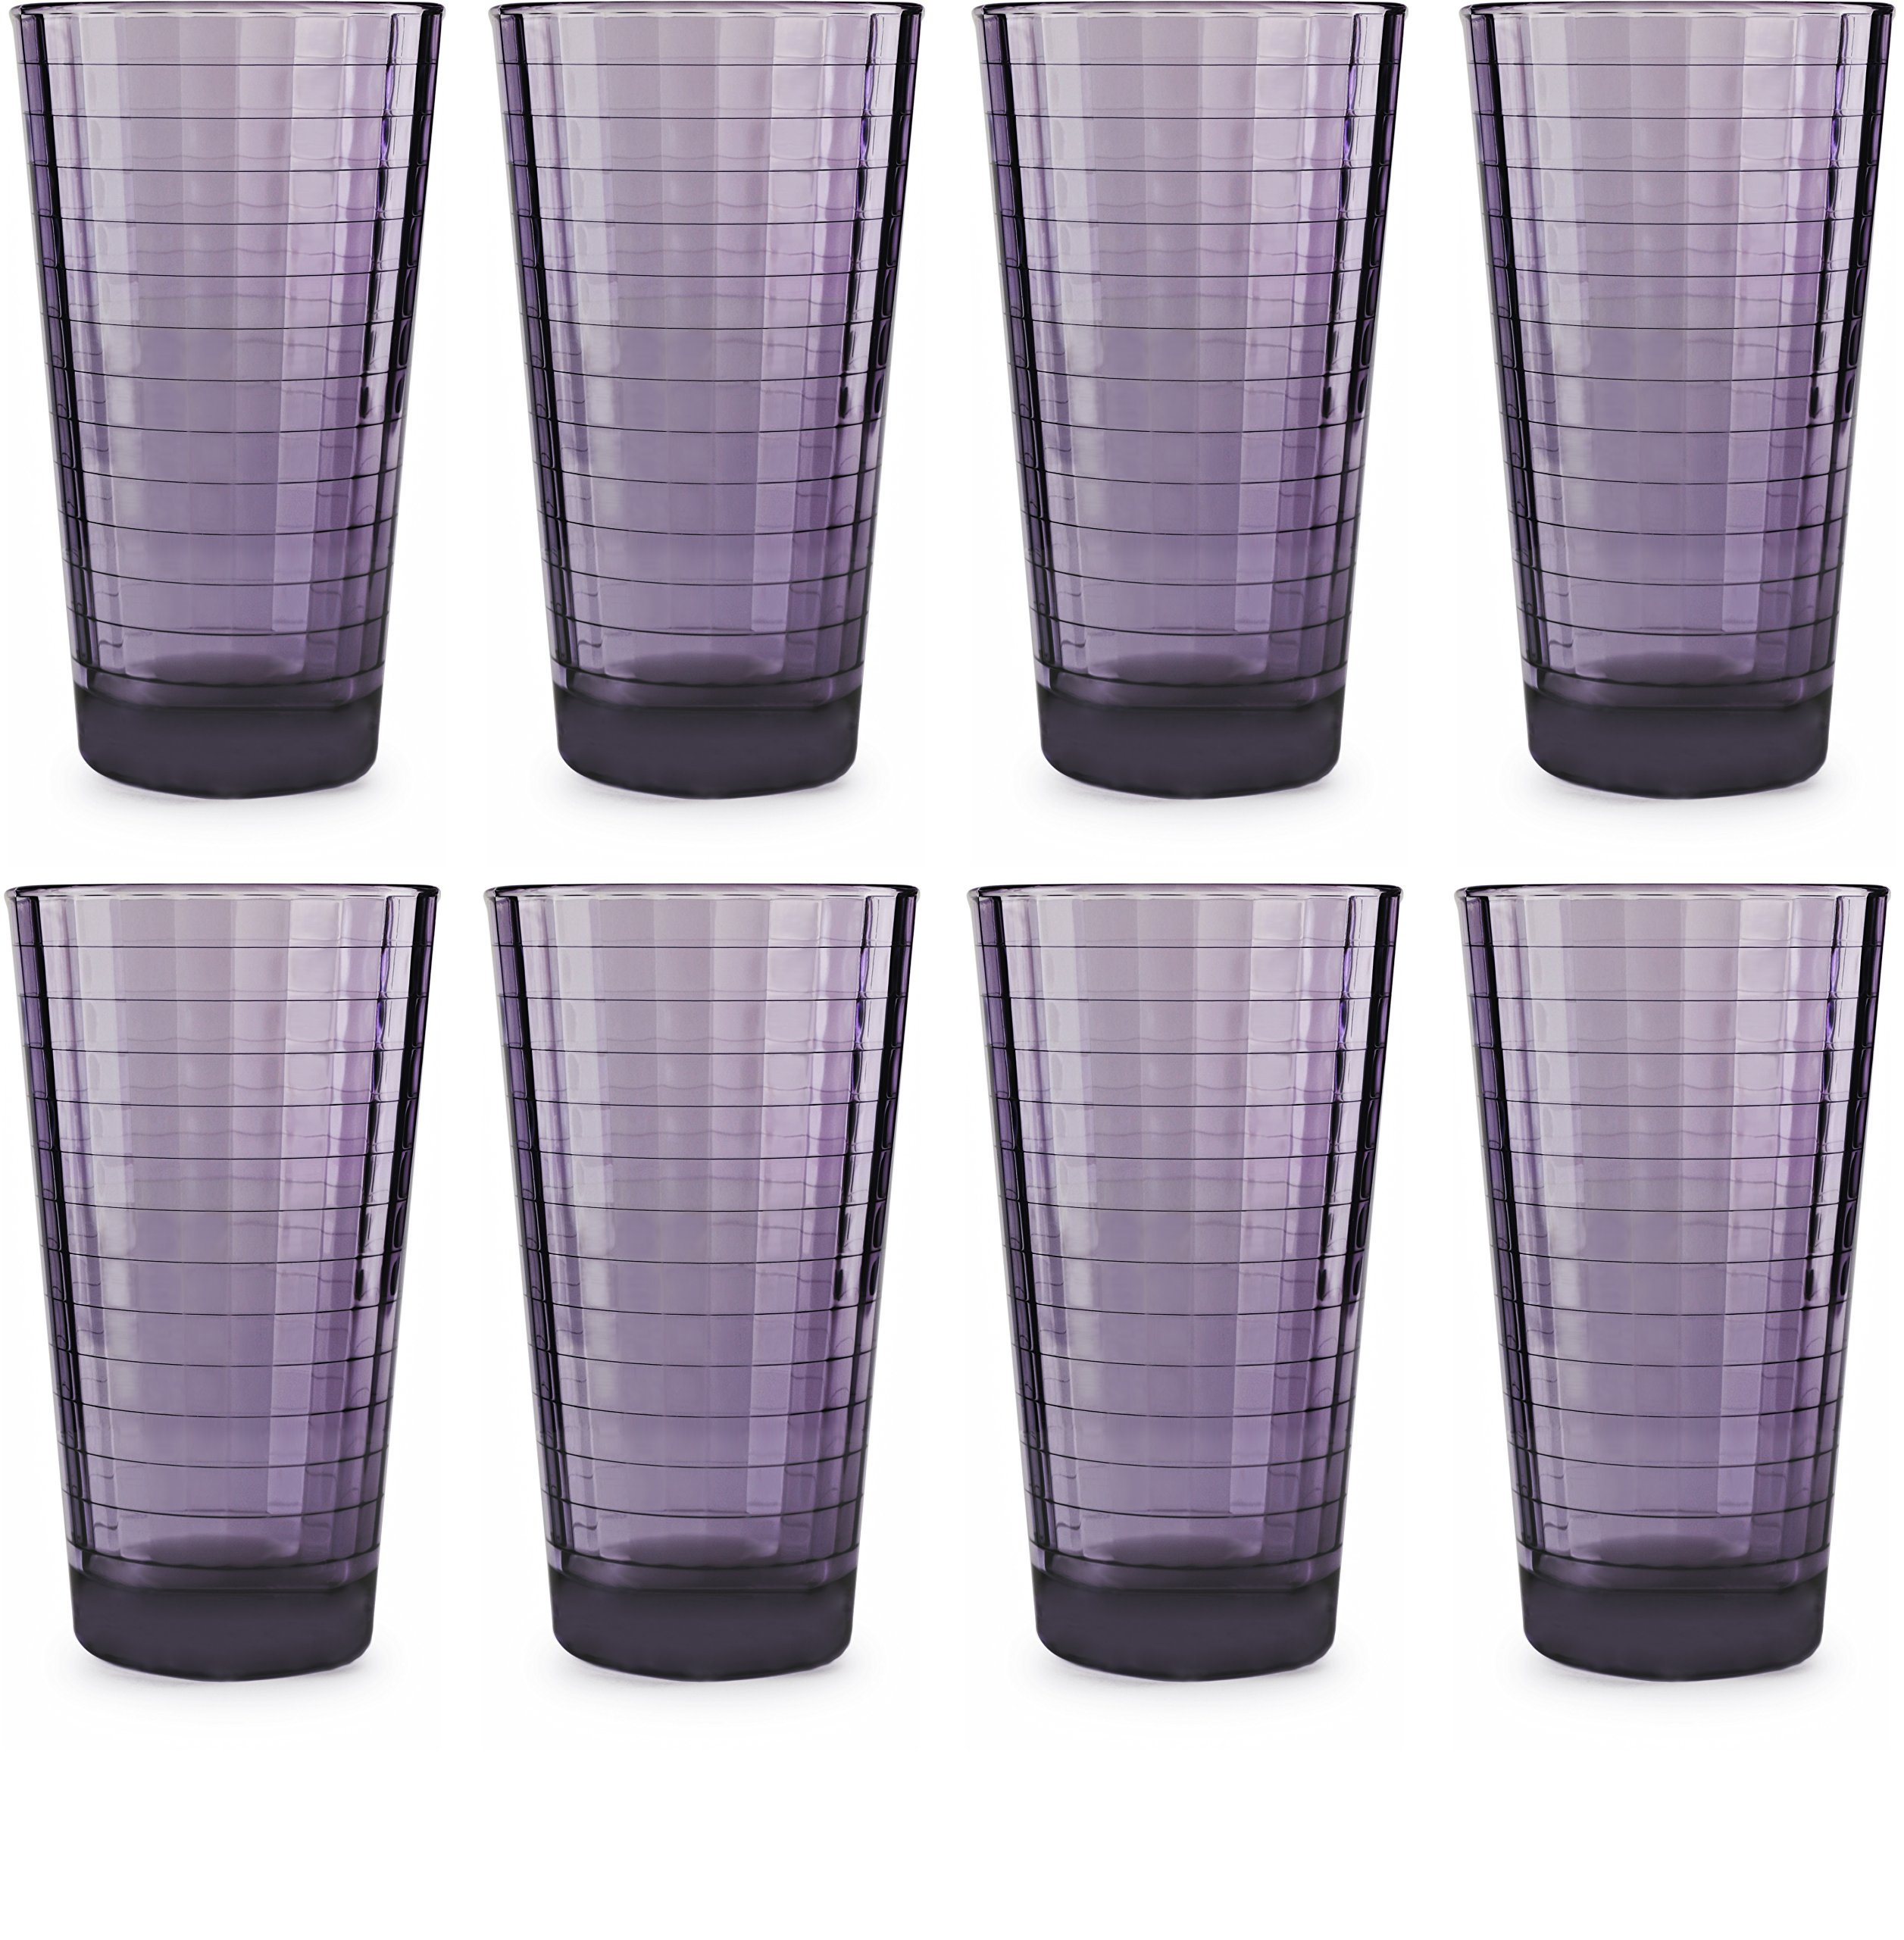 Circleware 44824 Windowpane Plum Beverage Drinking Glasses, Set of 8, 17 Ounce